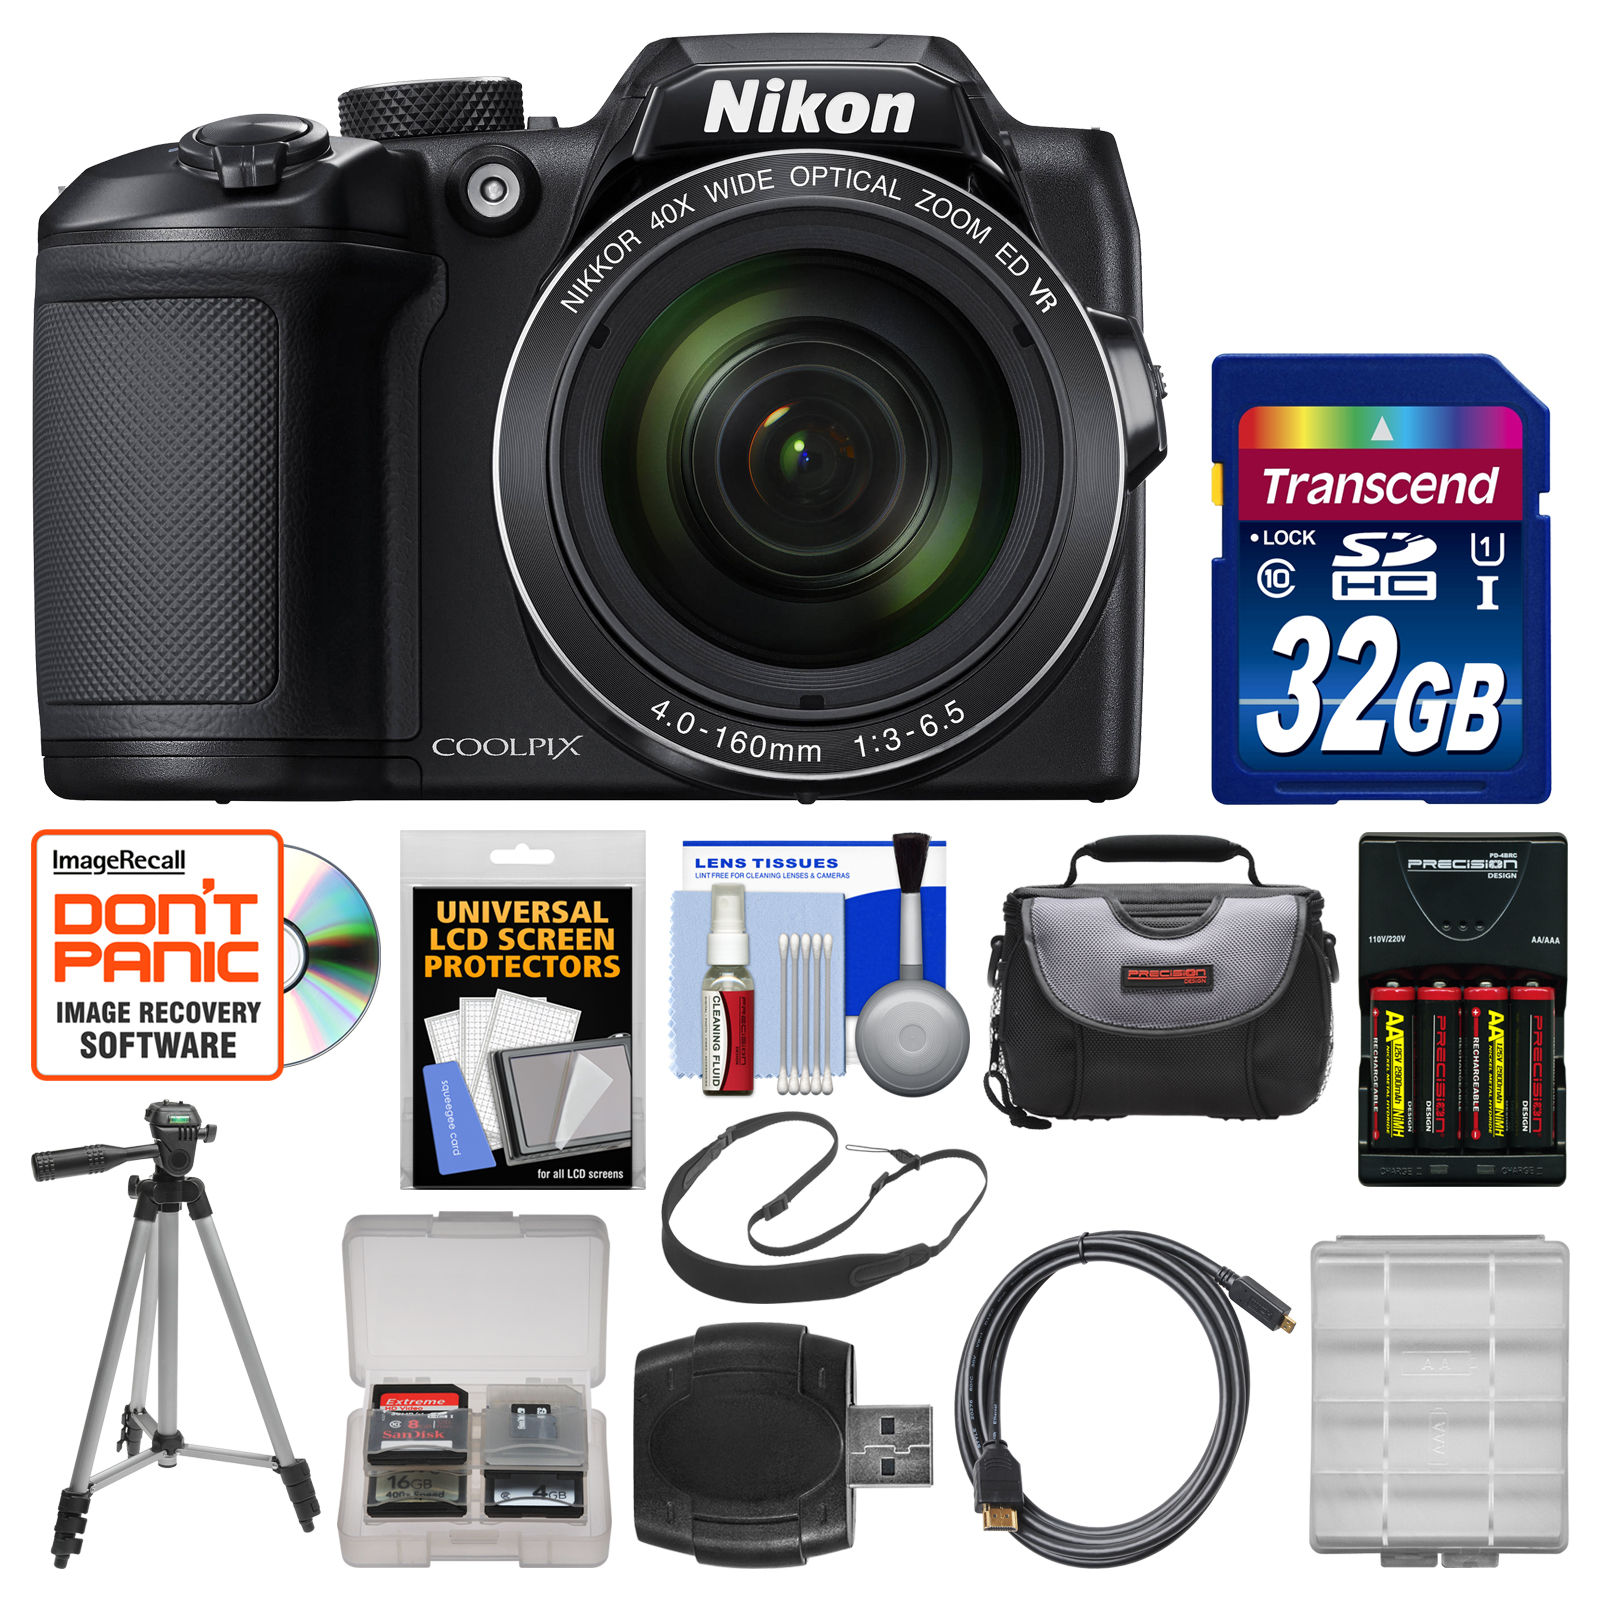 Nikon Coolpix B500 Wi-Fi Digital Camera (Black) with 32GB Card + Case + Batteries & Charger + Tripod + Sling Strap + Kit